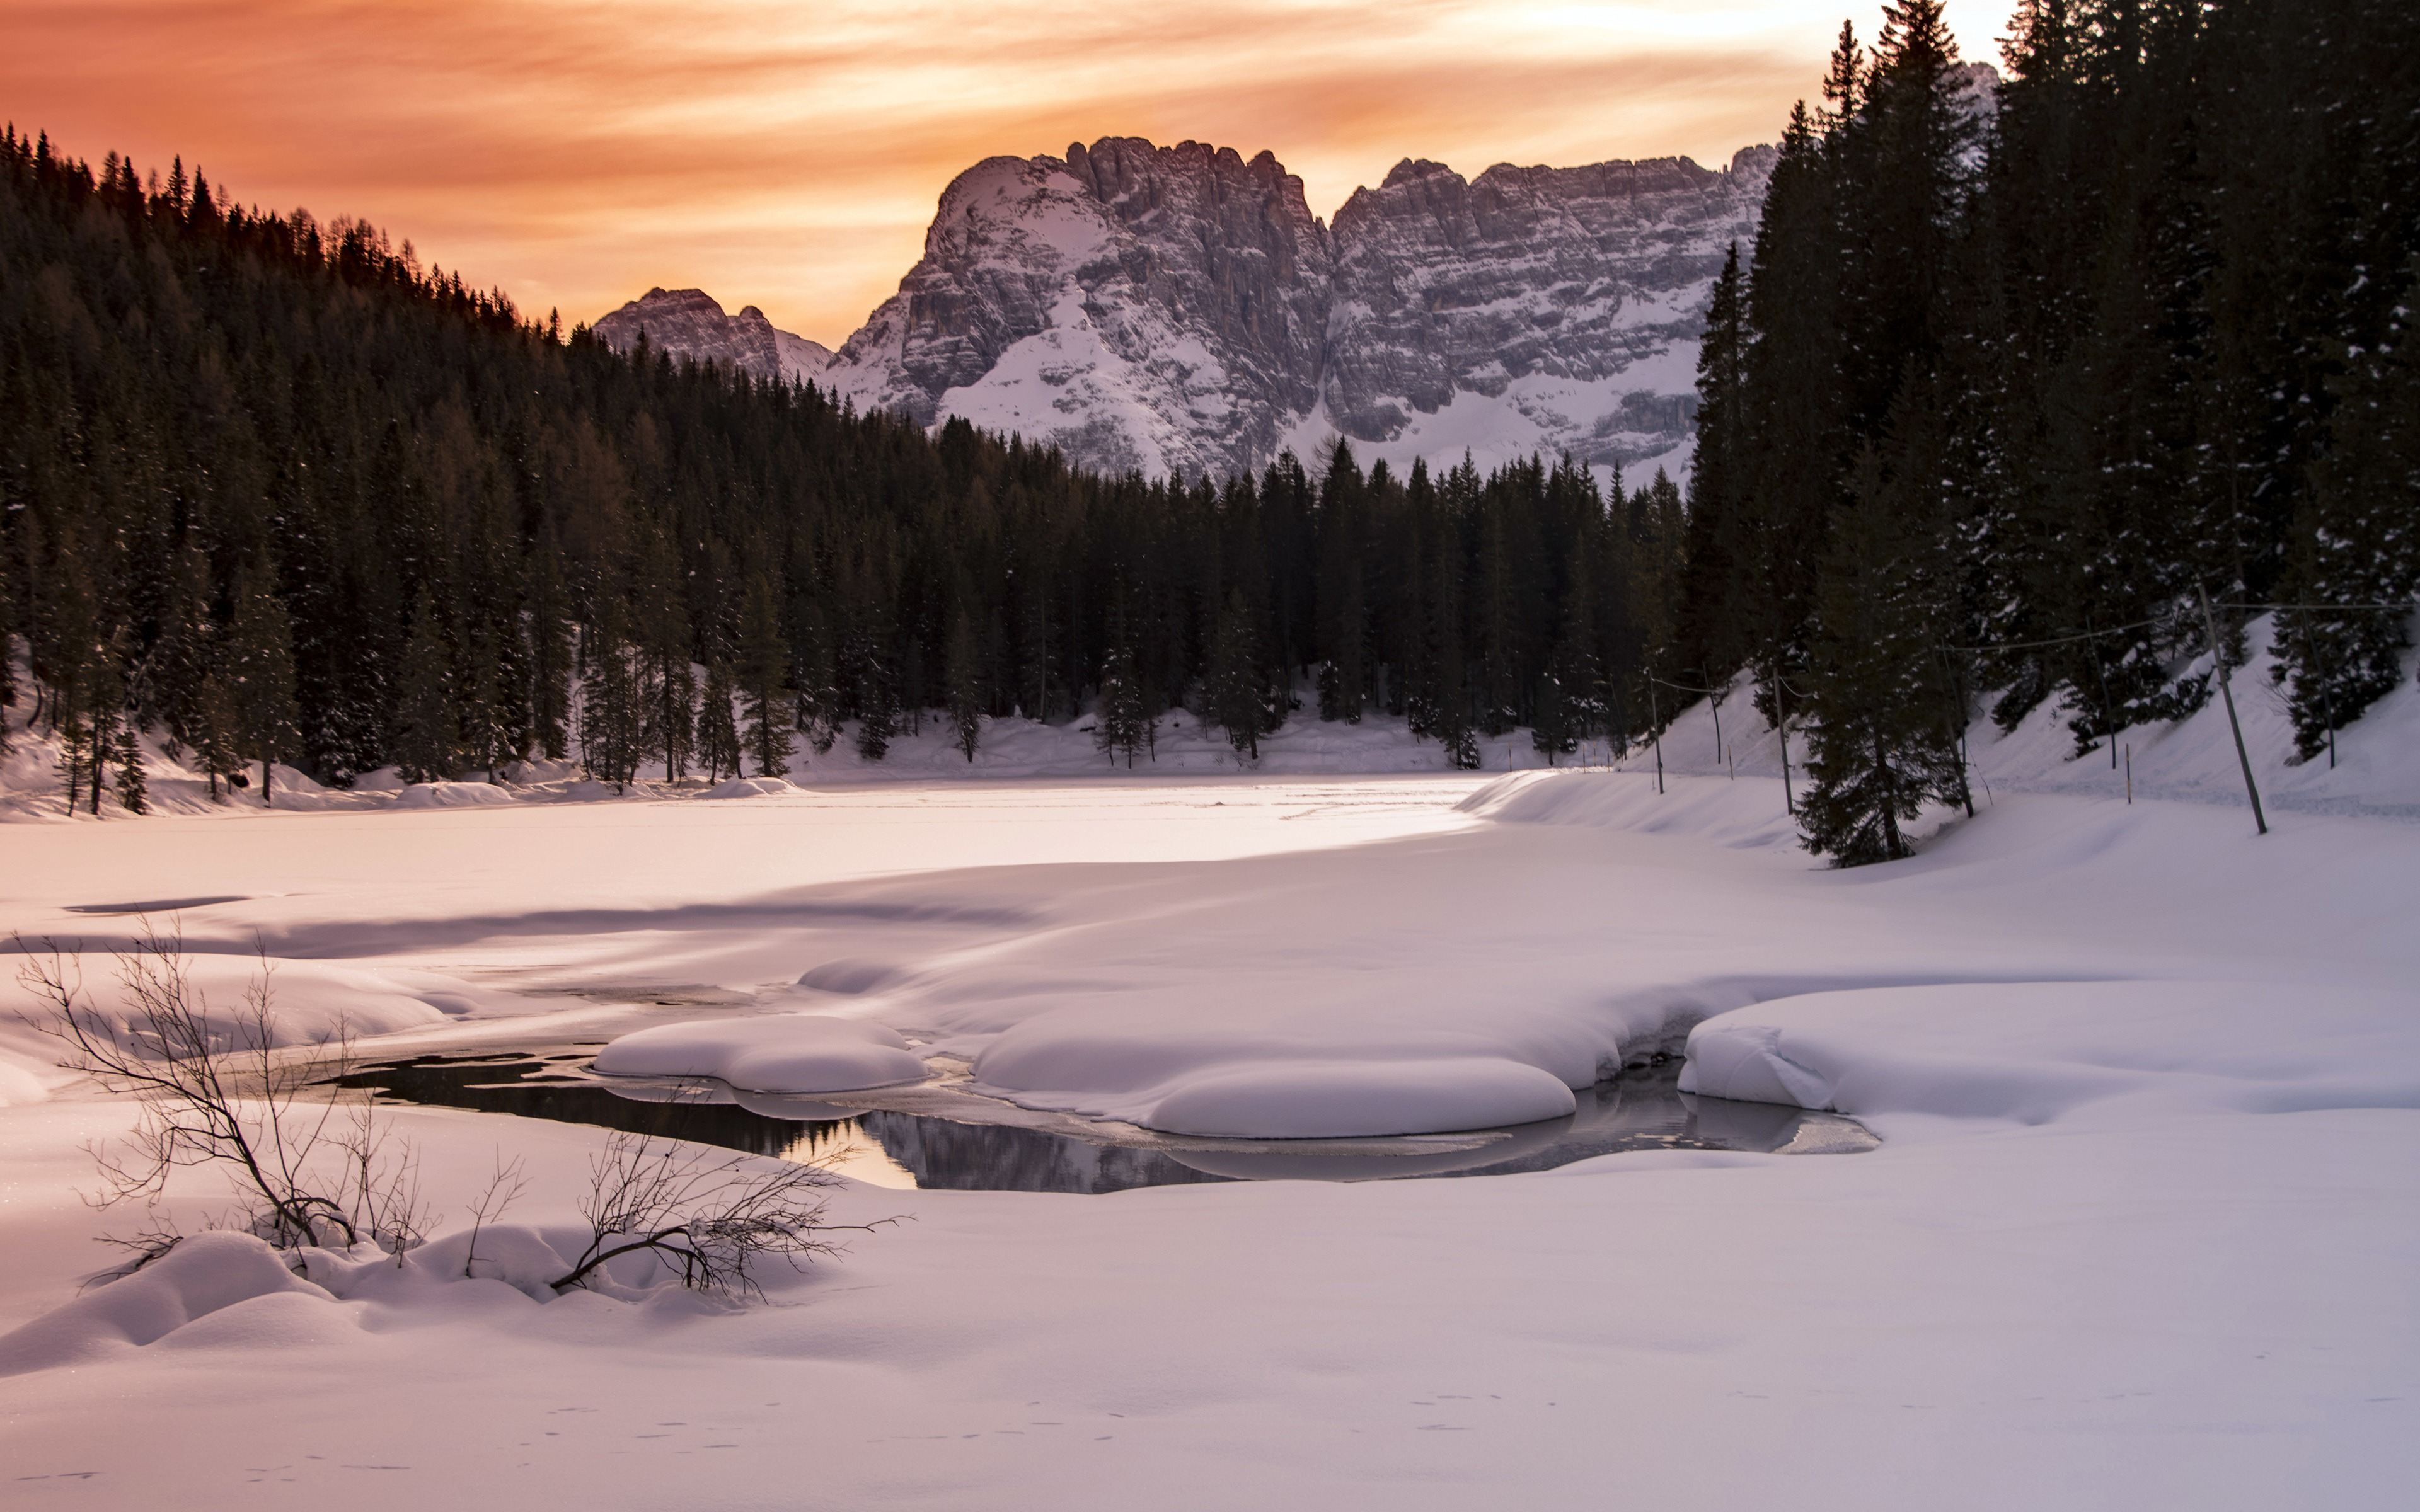 Winter jungle Alpine ice snow sunset - 3840x2400 wallpaper download